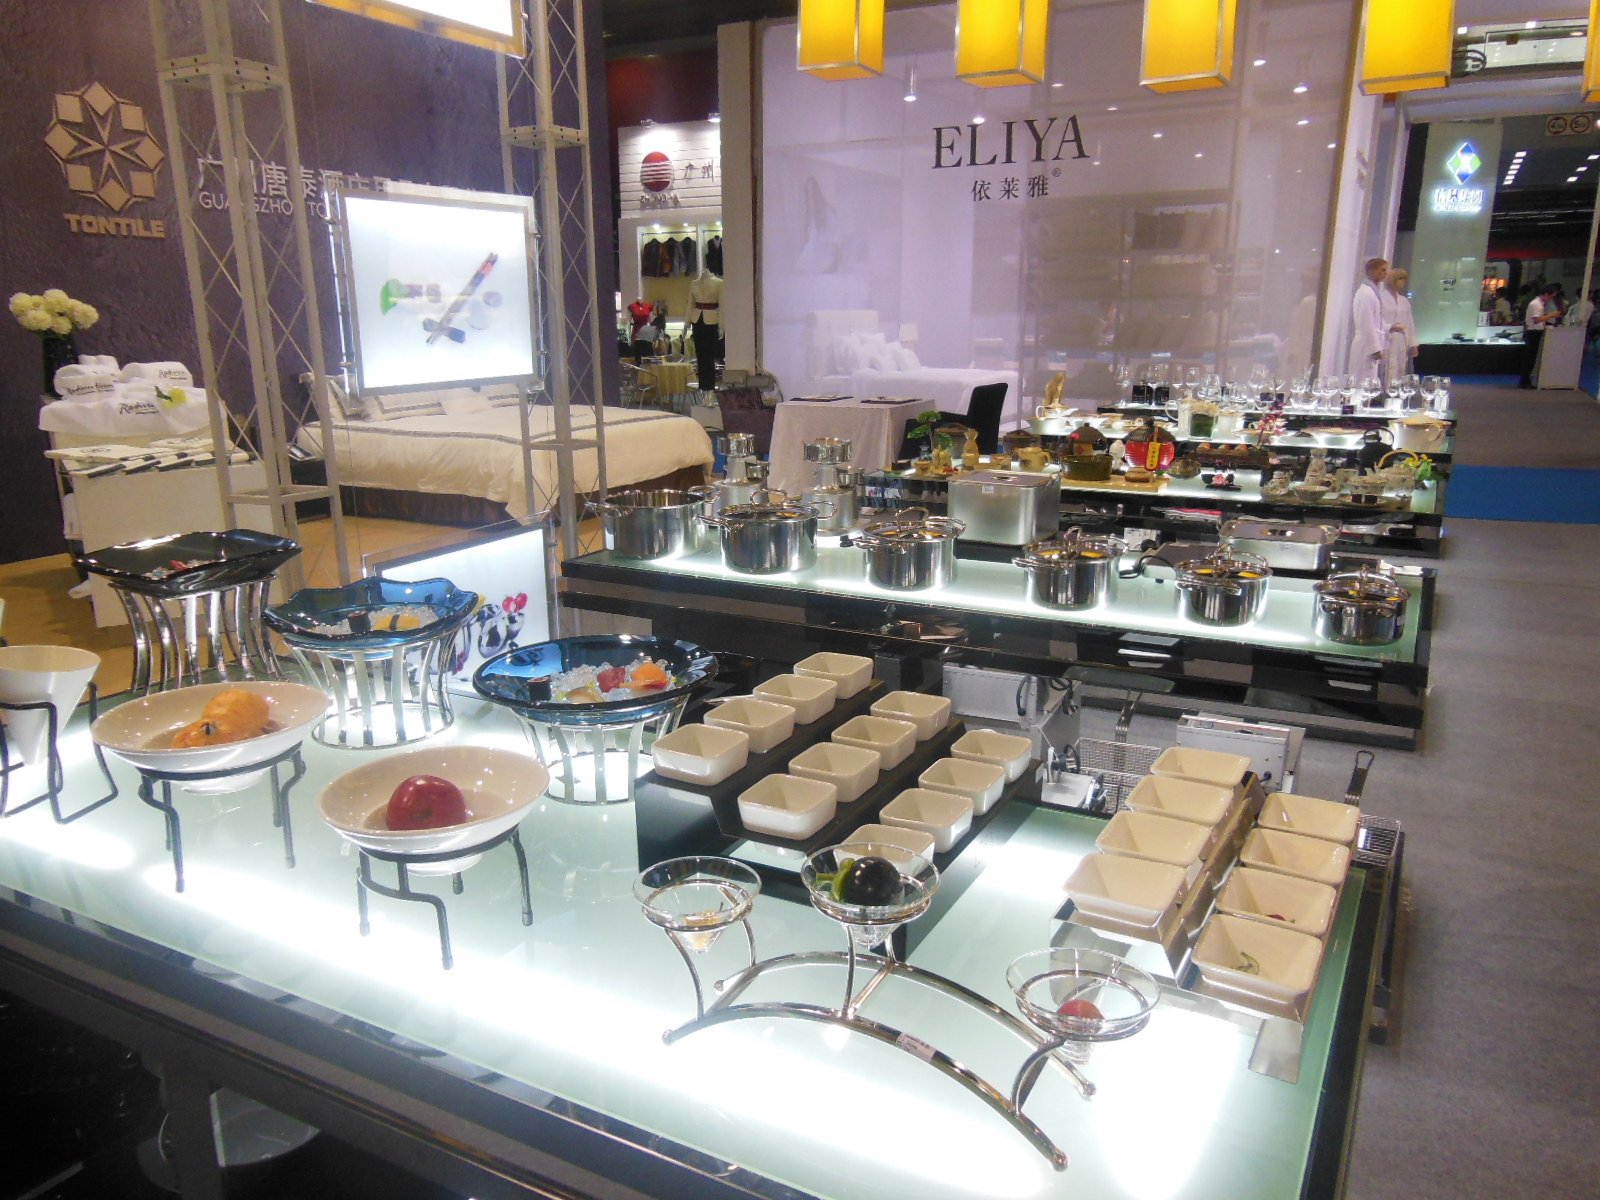 Guangzhou pazhou exhibition-Tontile Buffet products